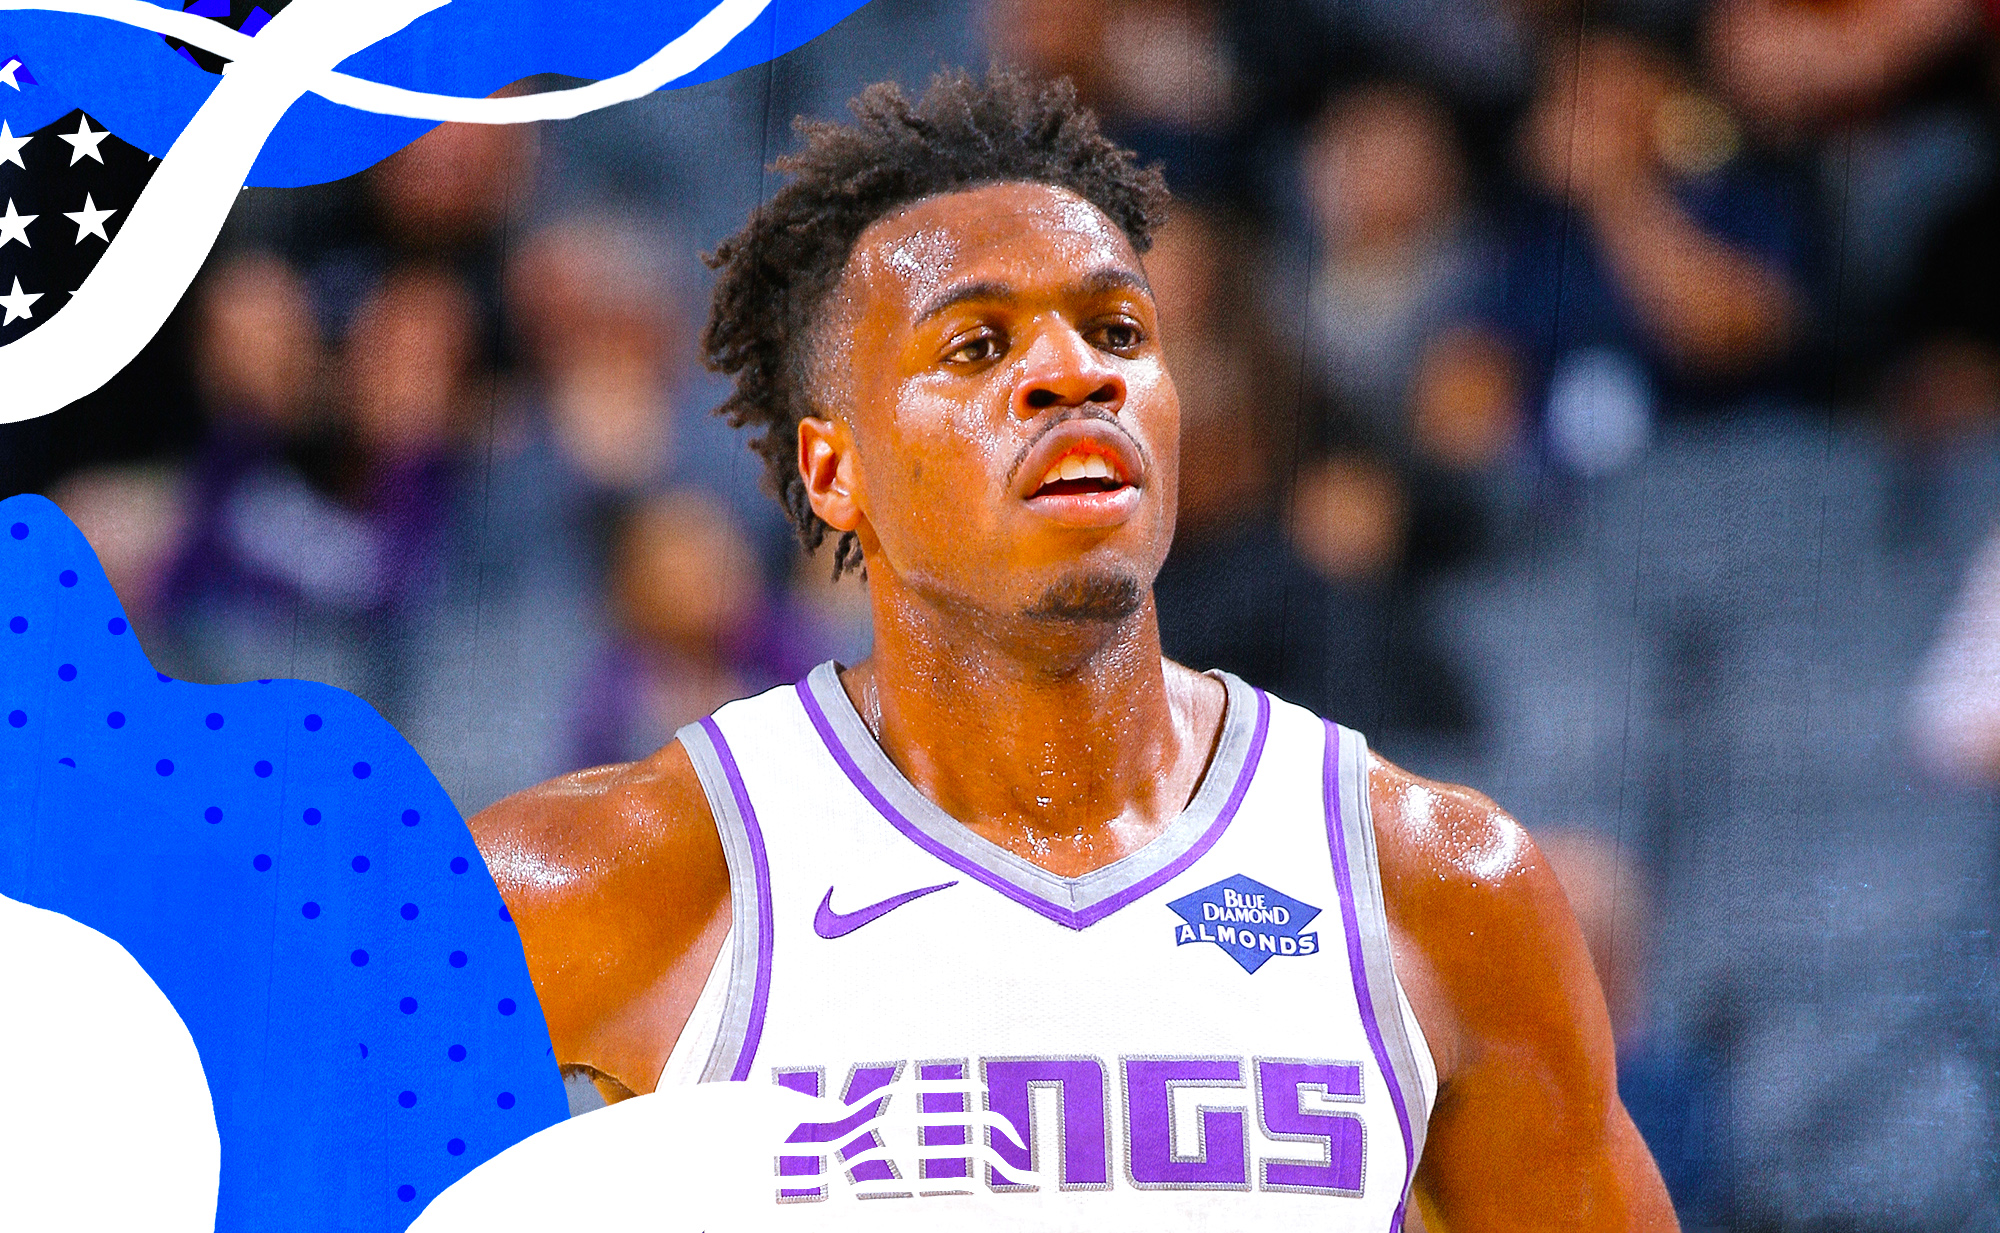 Buddy Hield of the Kings focuses on the court.